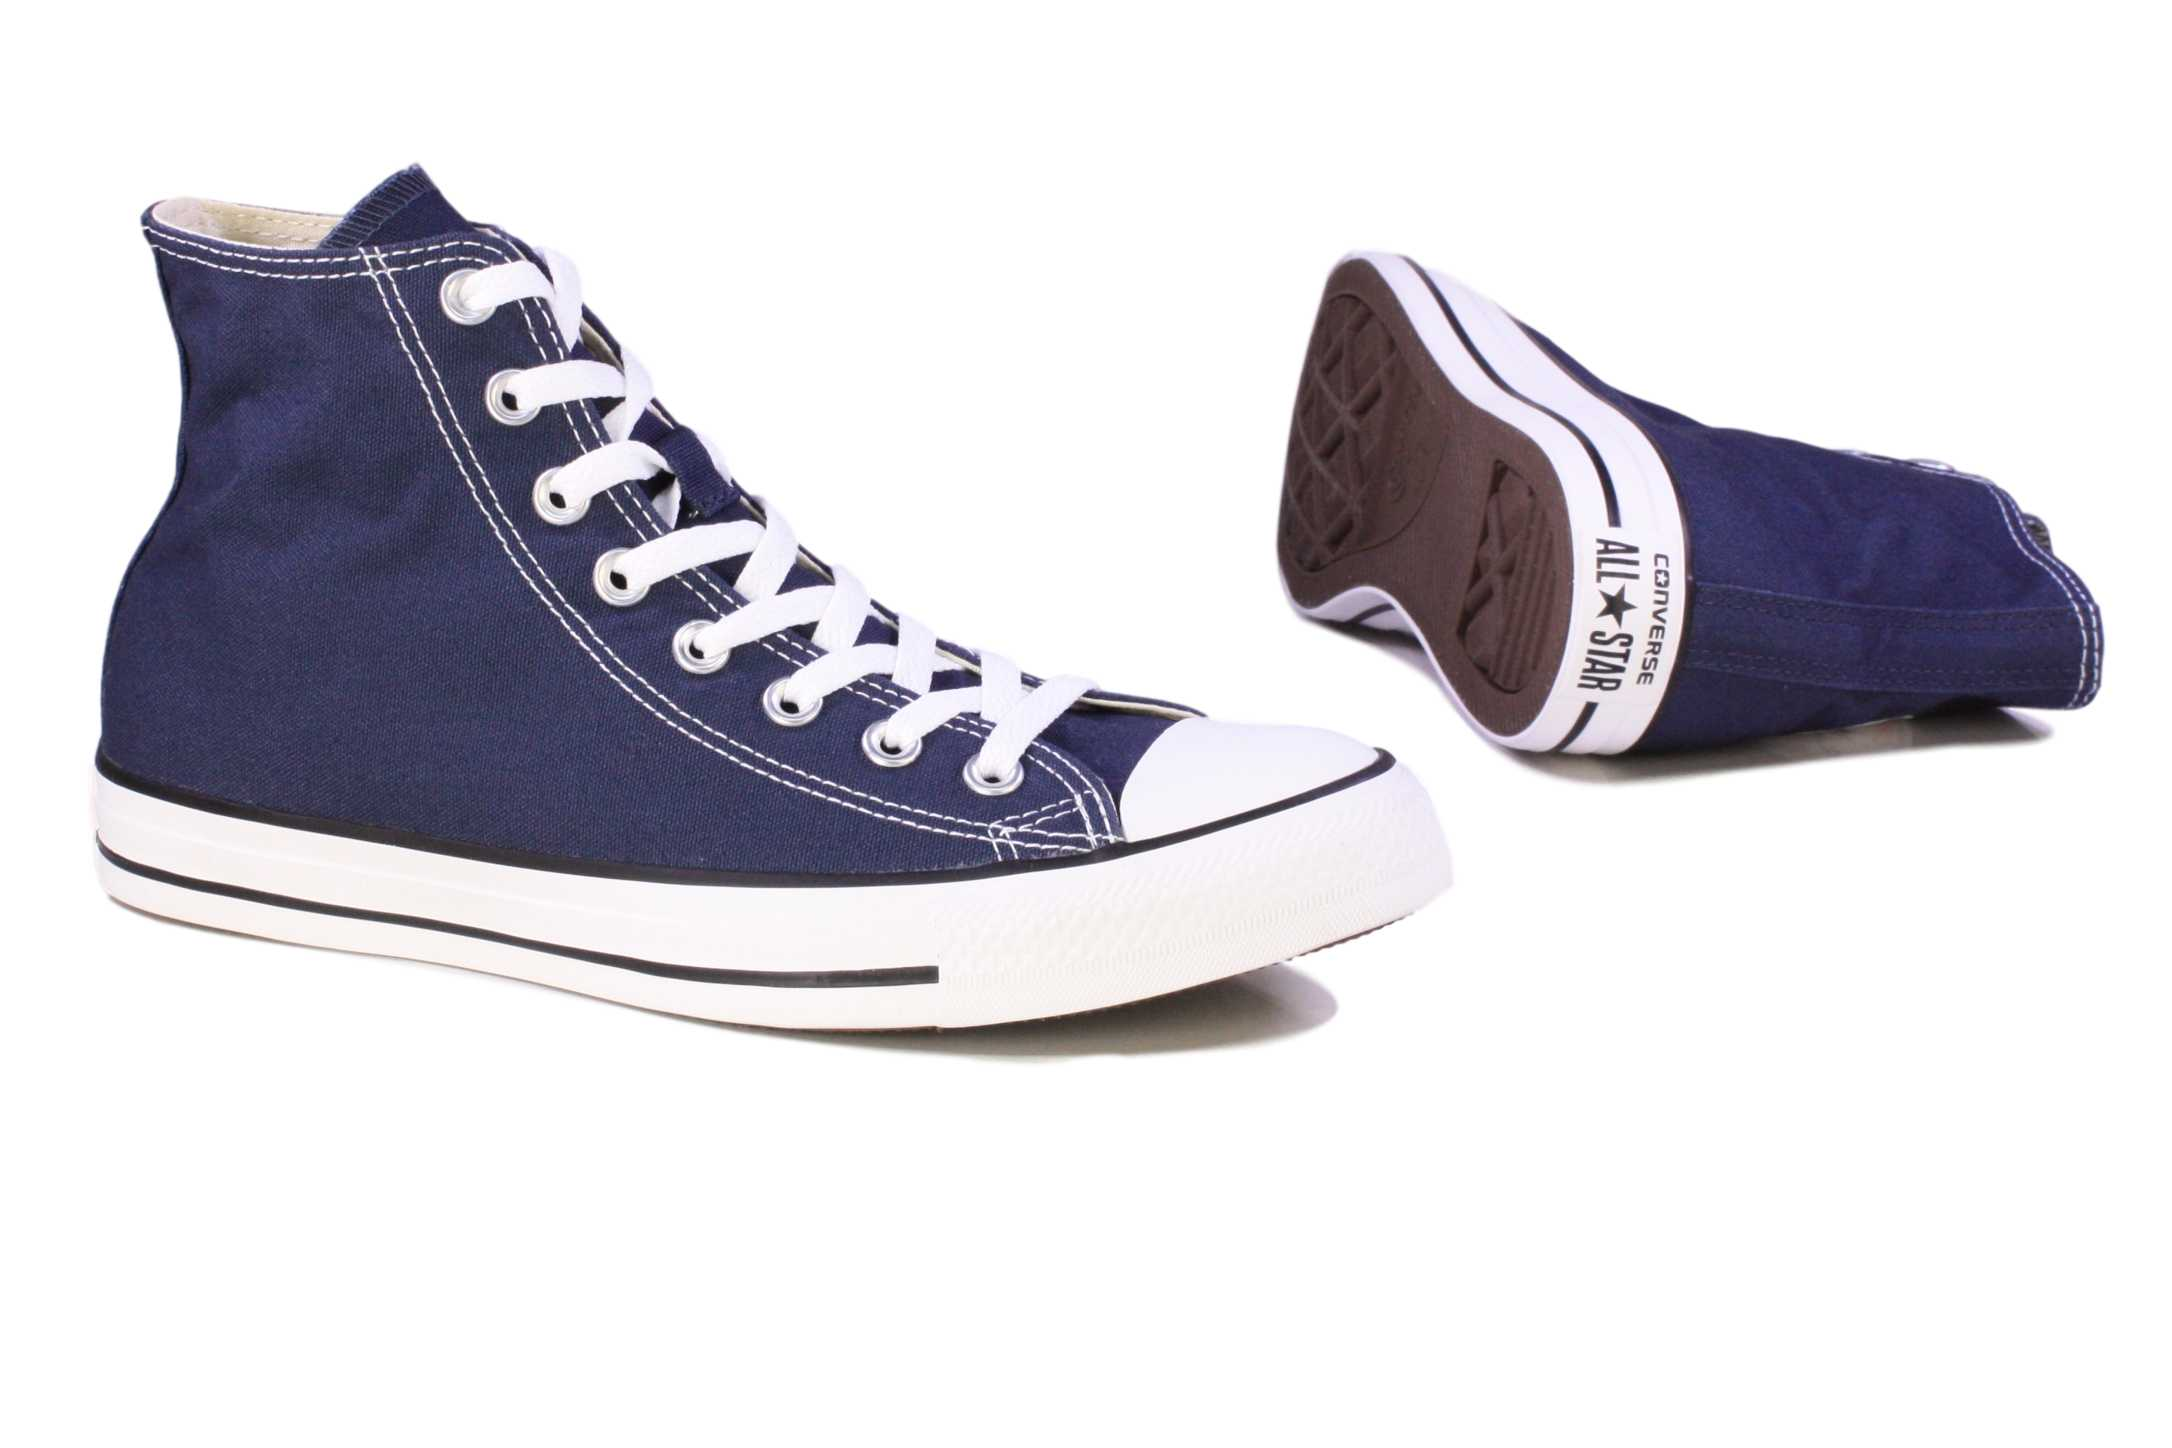 CHUCK TAYLOR ALL STAR HI M9622